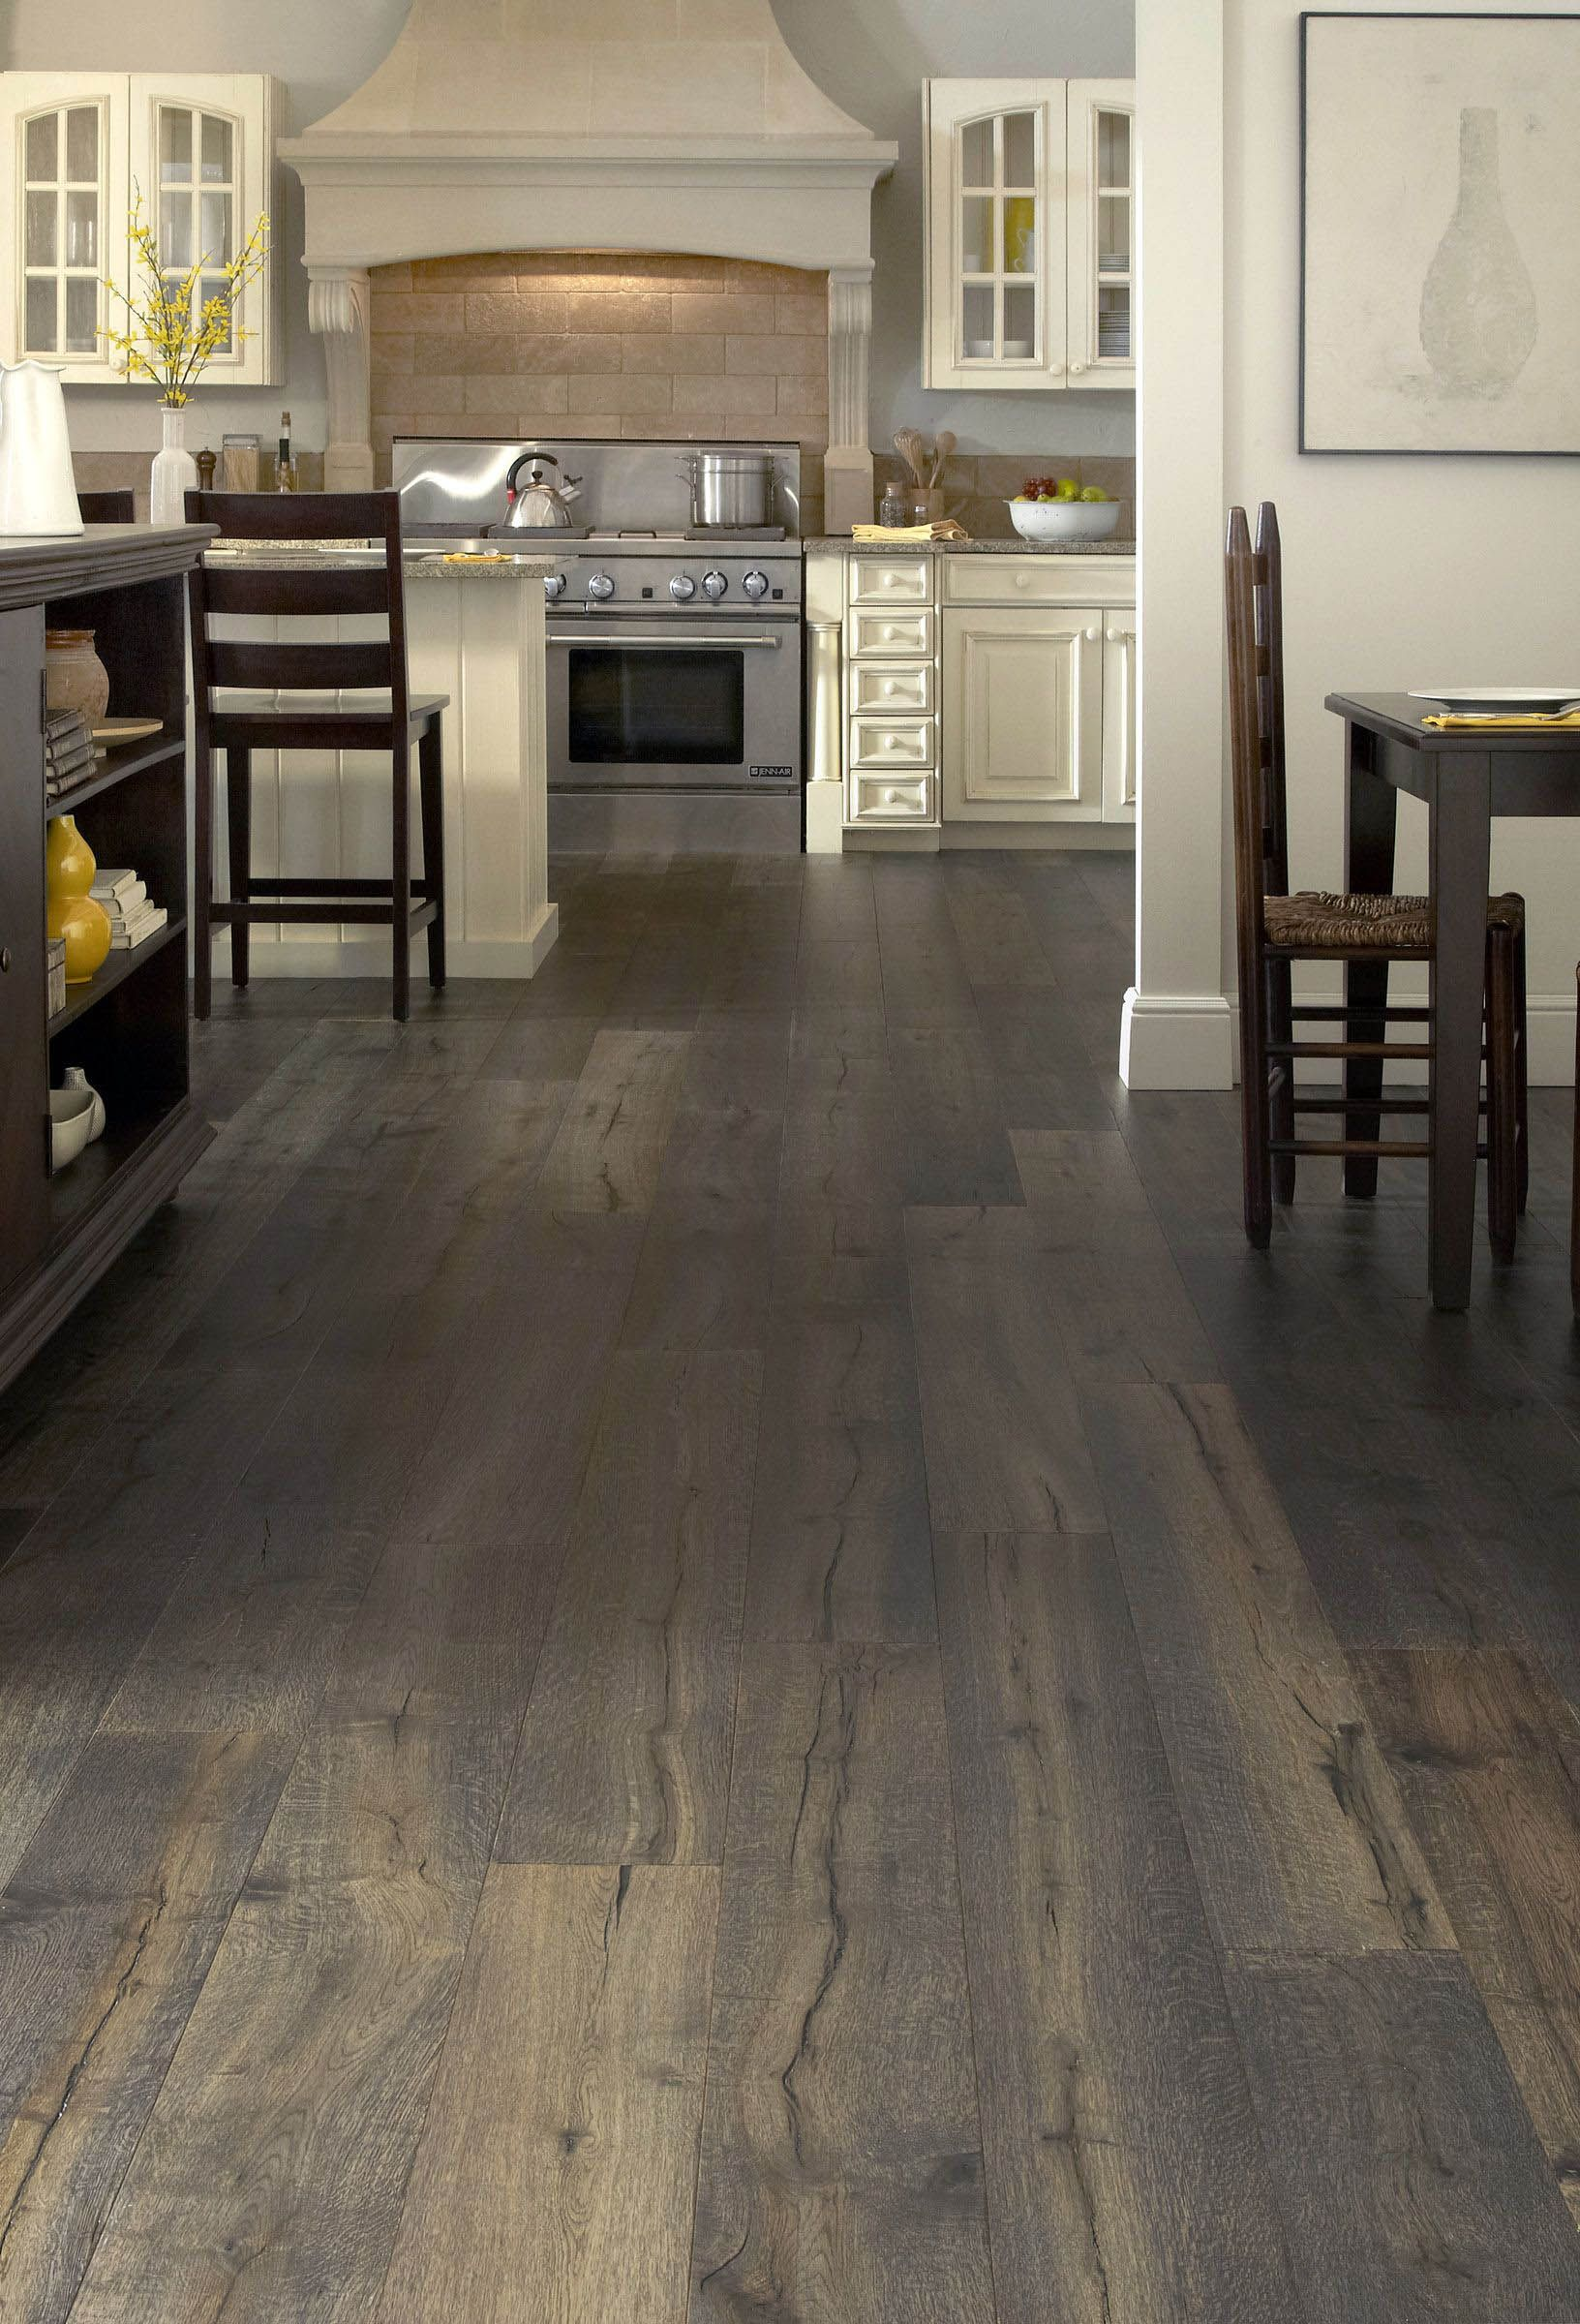 Should I Put In a Hard Wood Floor In My Home kitchen   Flooring ...